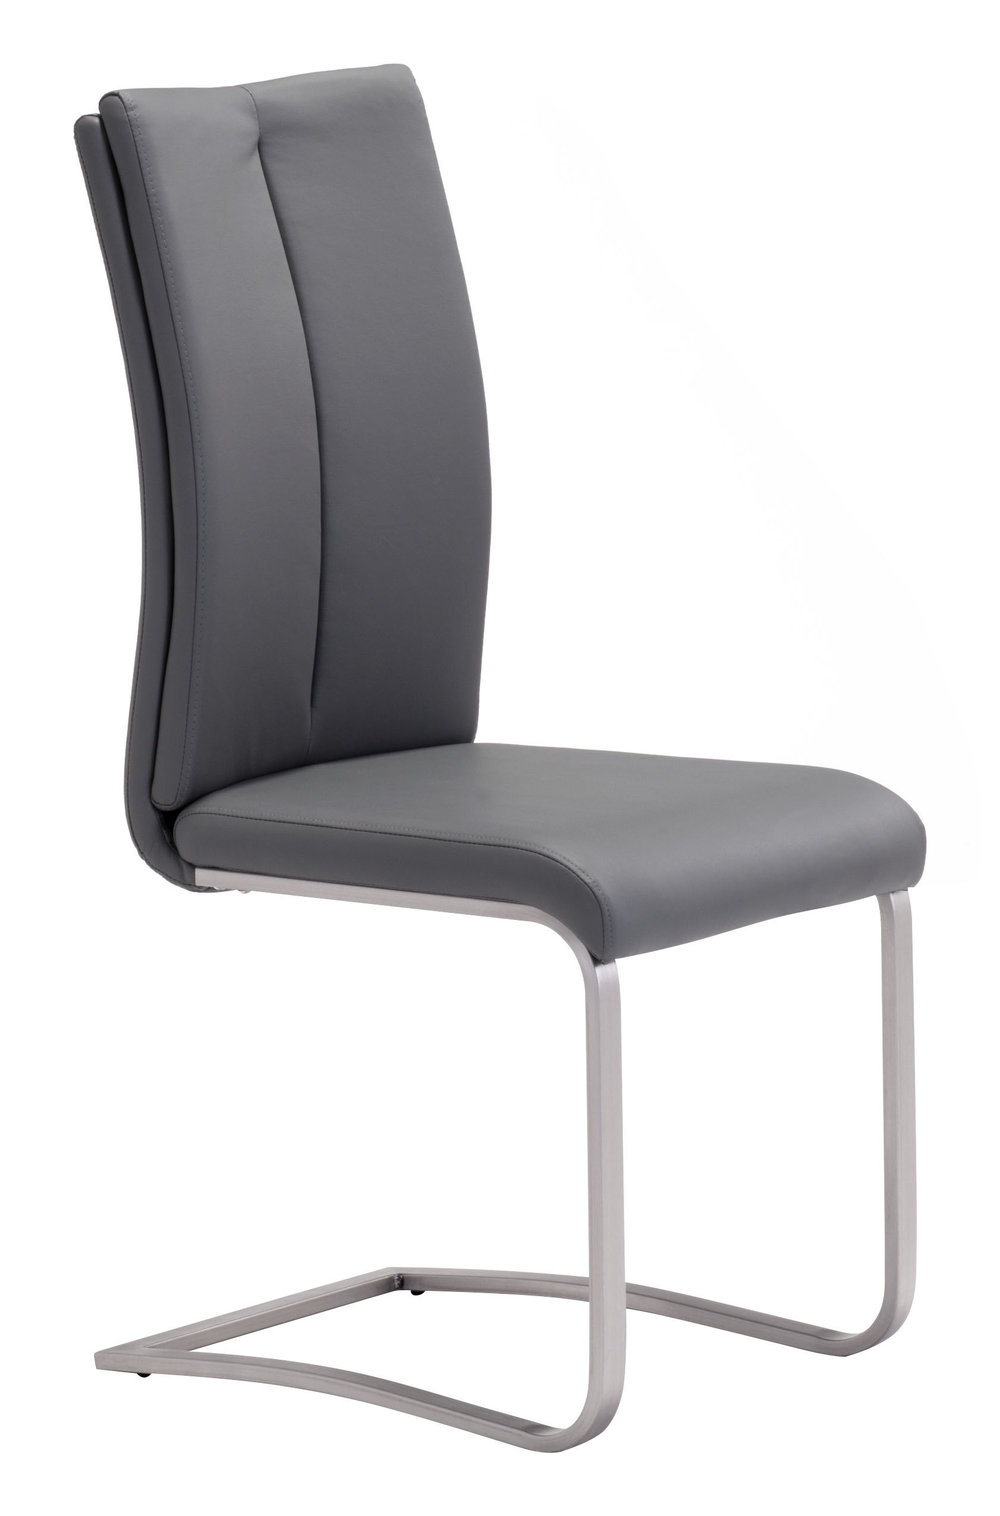 ZUO MODERN CONTEMPORARY, INC - Rosemont Dining Chair - Set of 2 - Gray